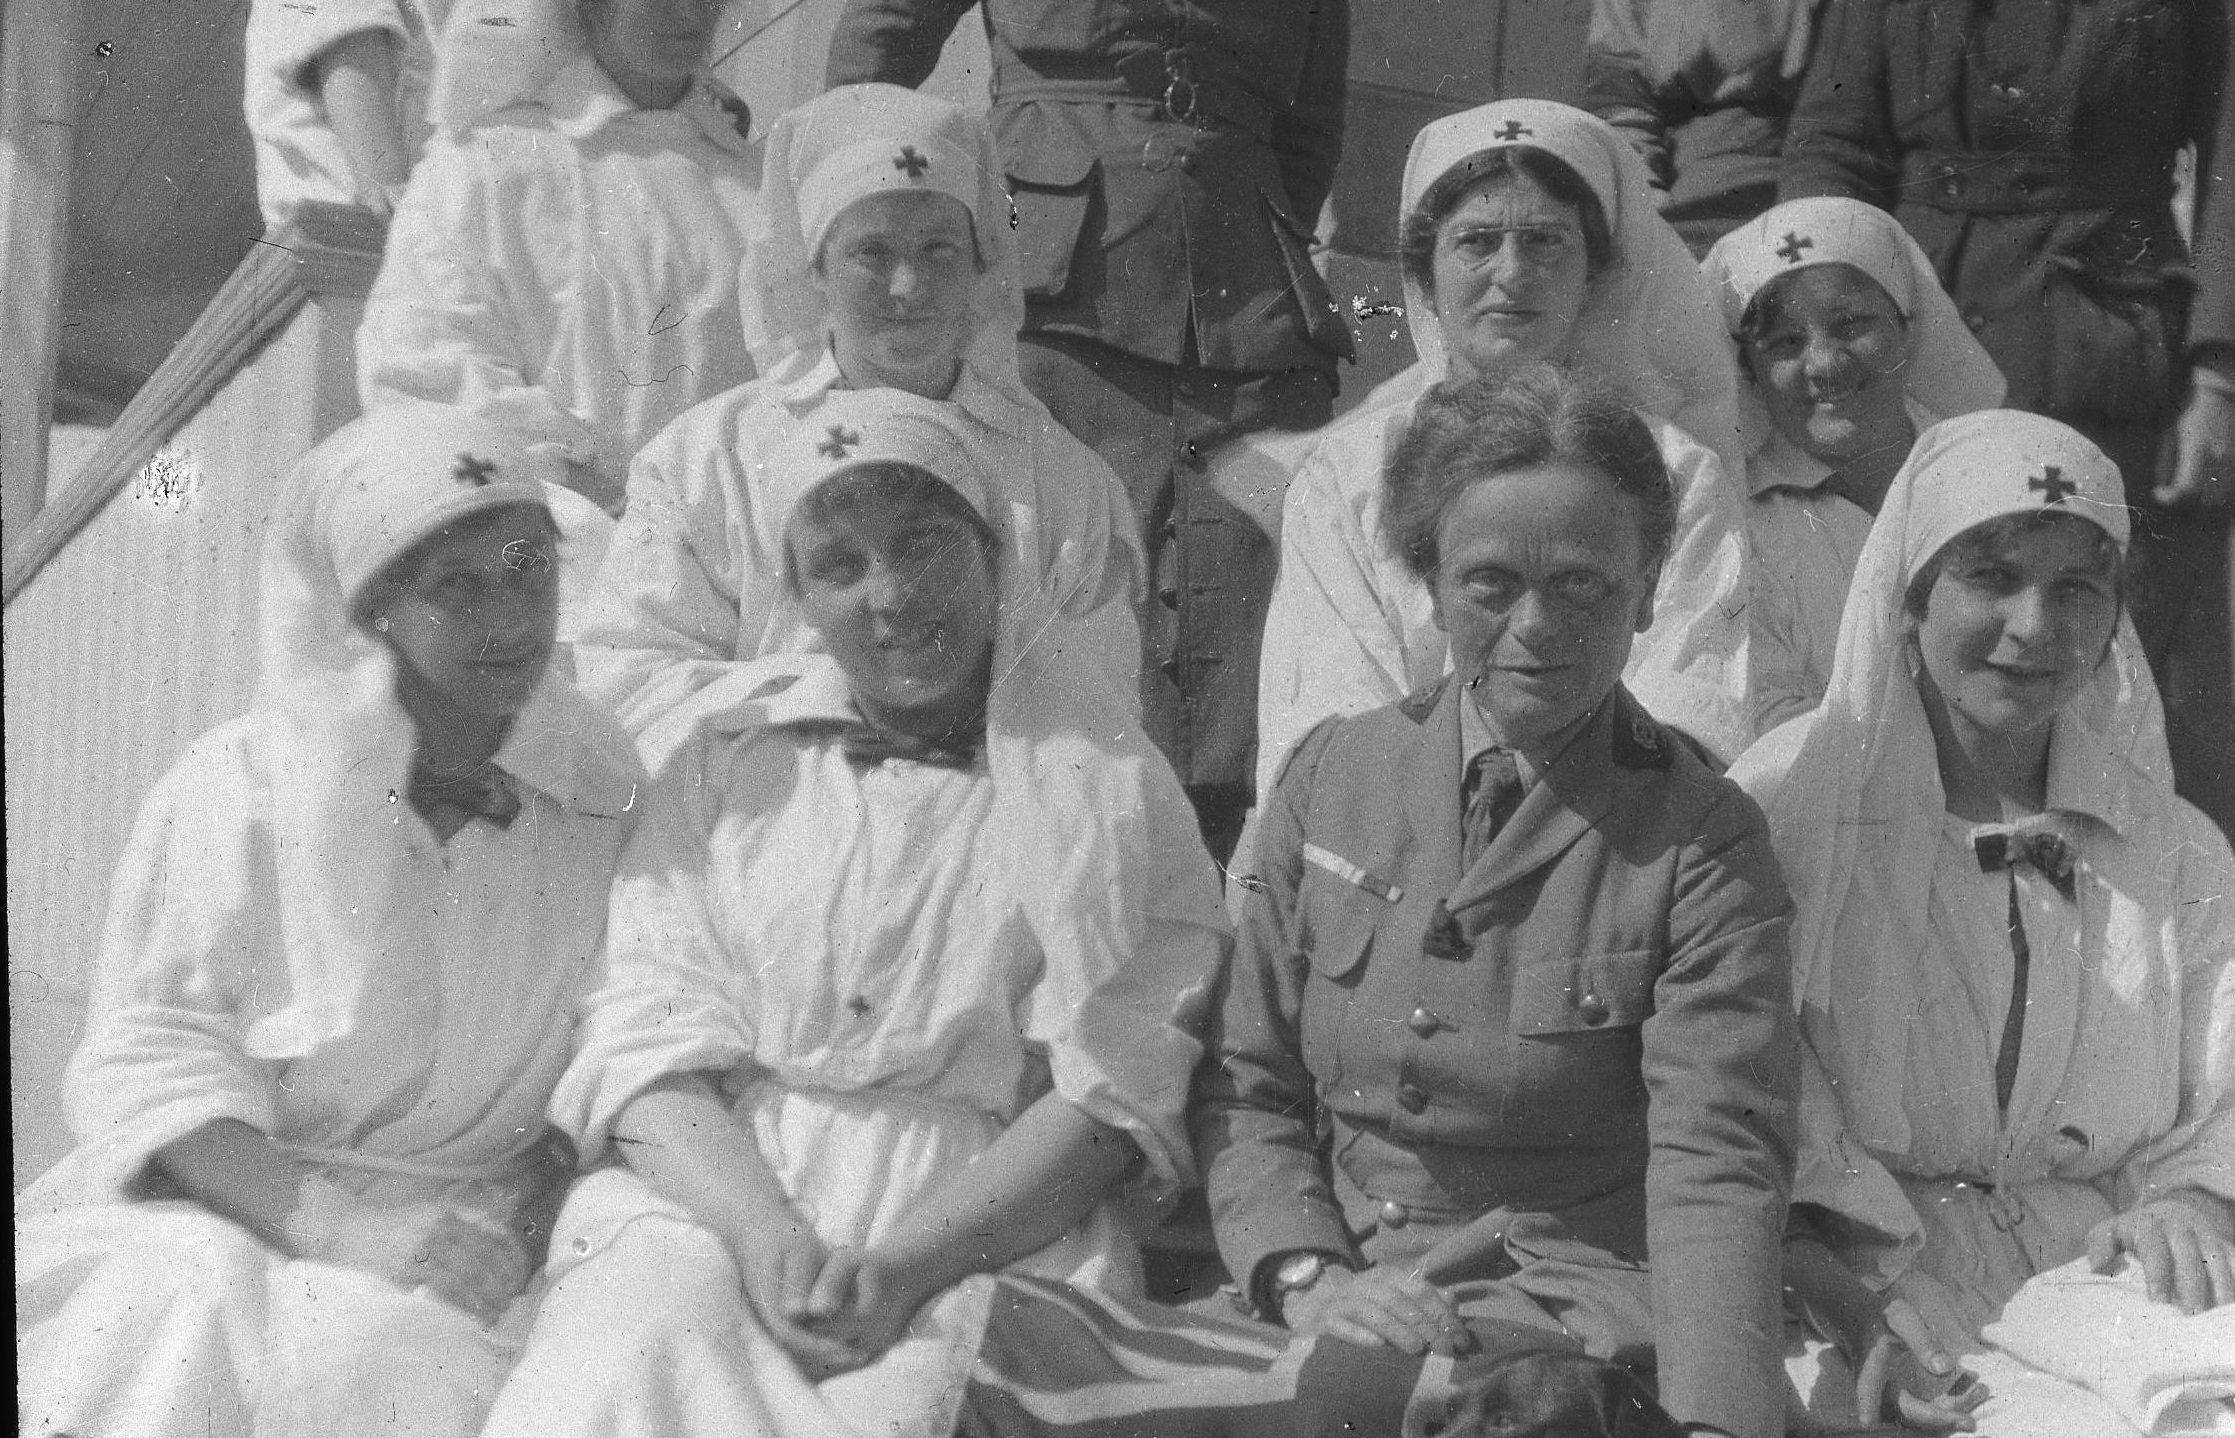 The Scottish Women's Hospitals led by founder Dr Elsie Inglis, (bottom row, second from right), cared for wounded soldiers on the frontline